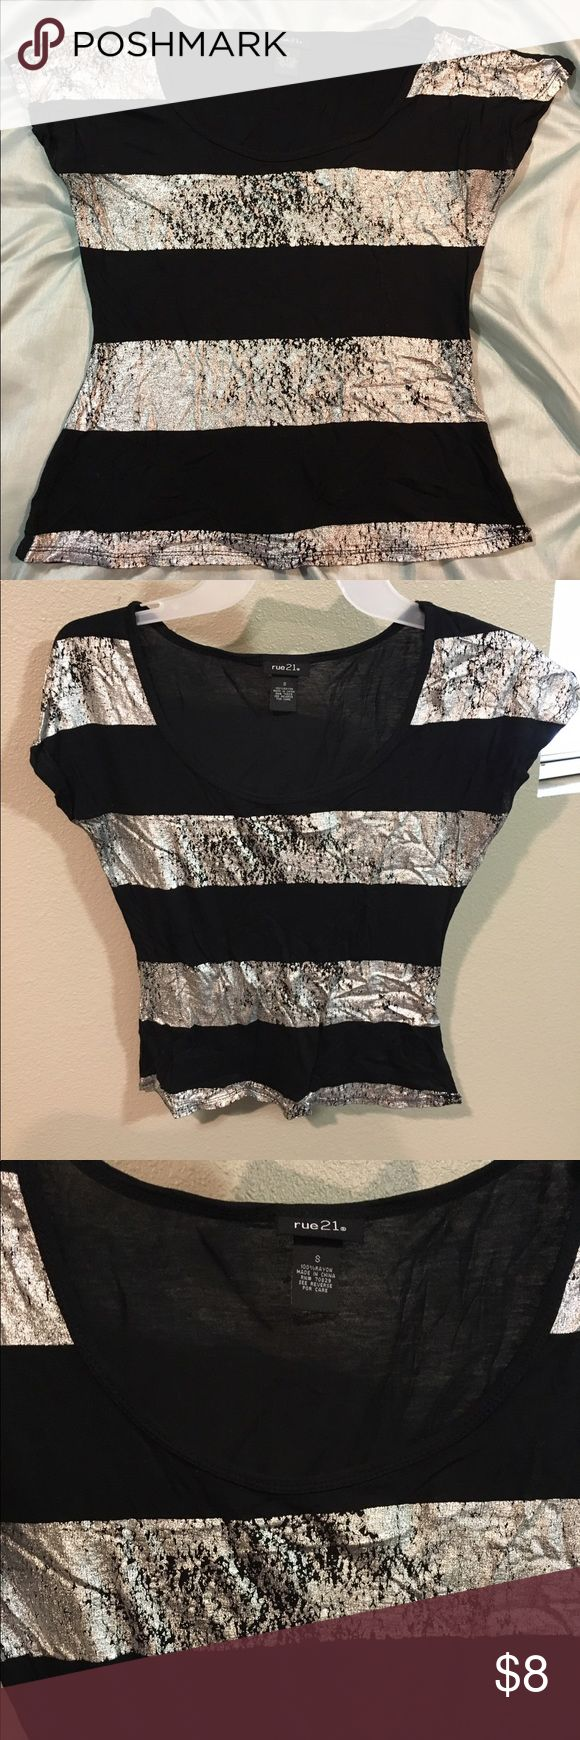 Rue21 black and silver blouse Black and silver blouse from Rue21 Rue21 Tops Blouses